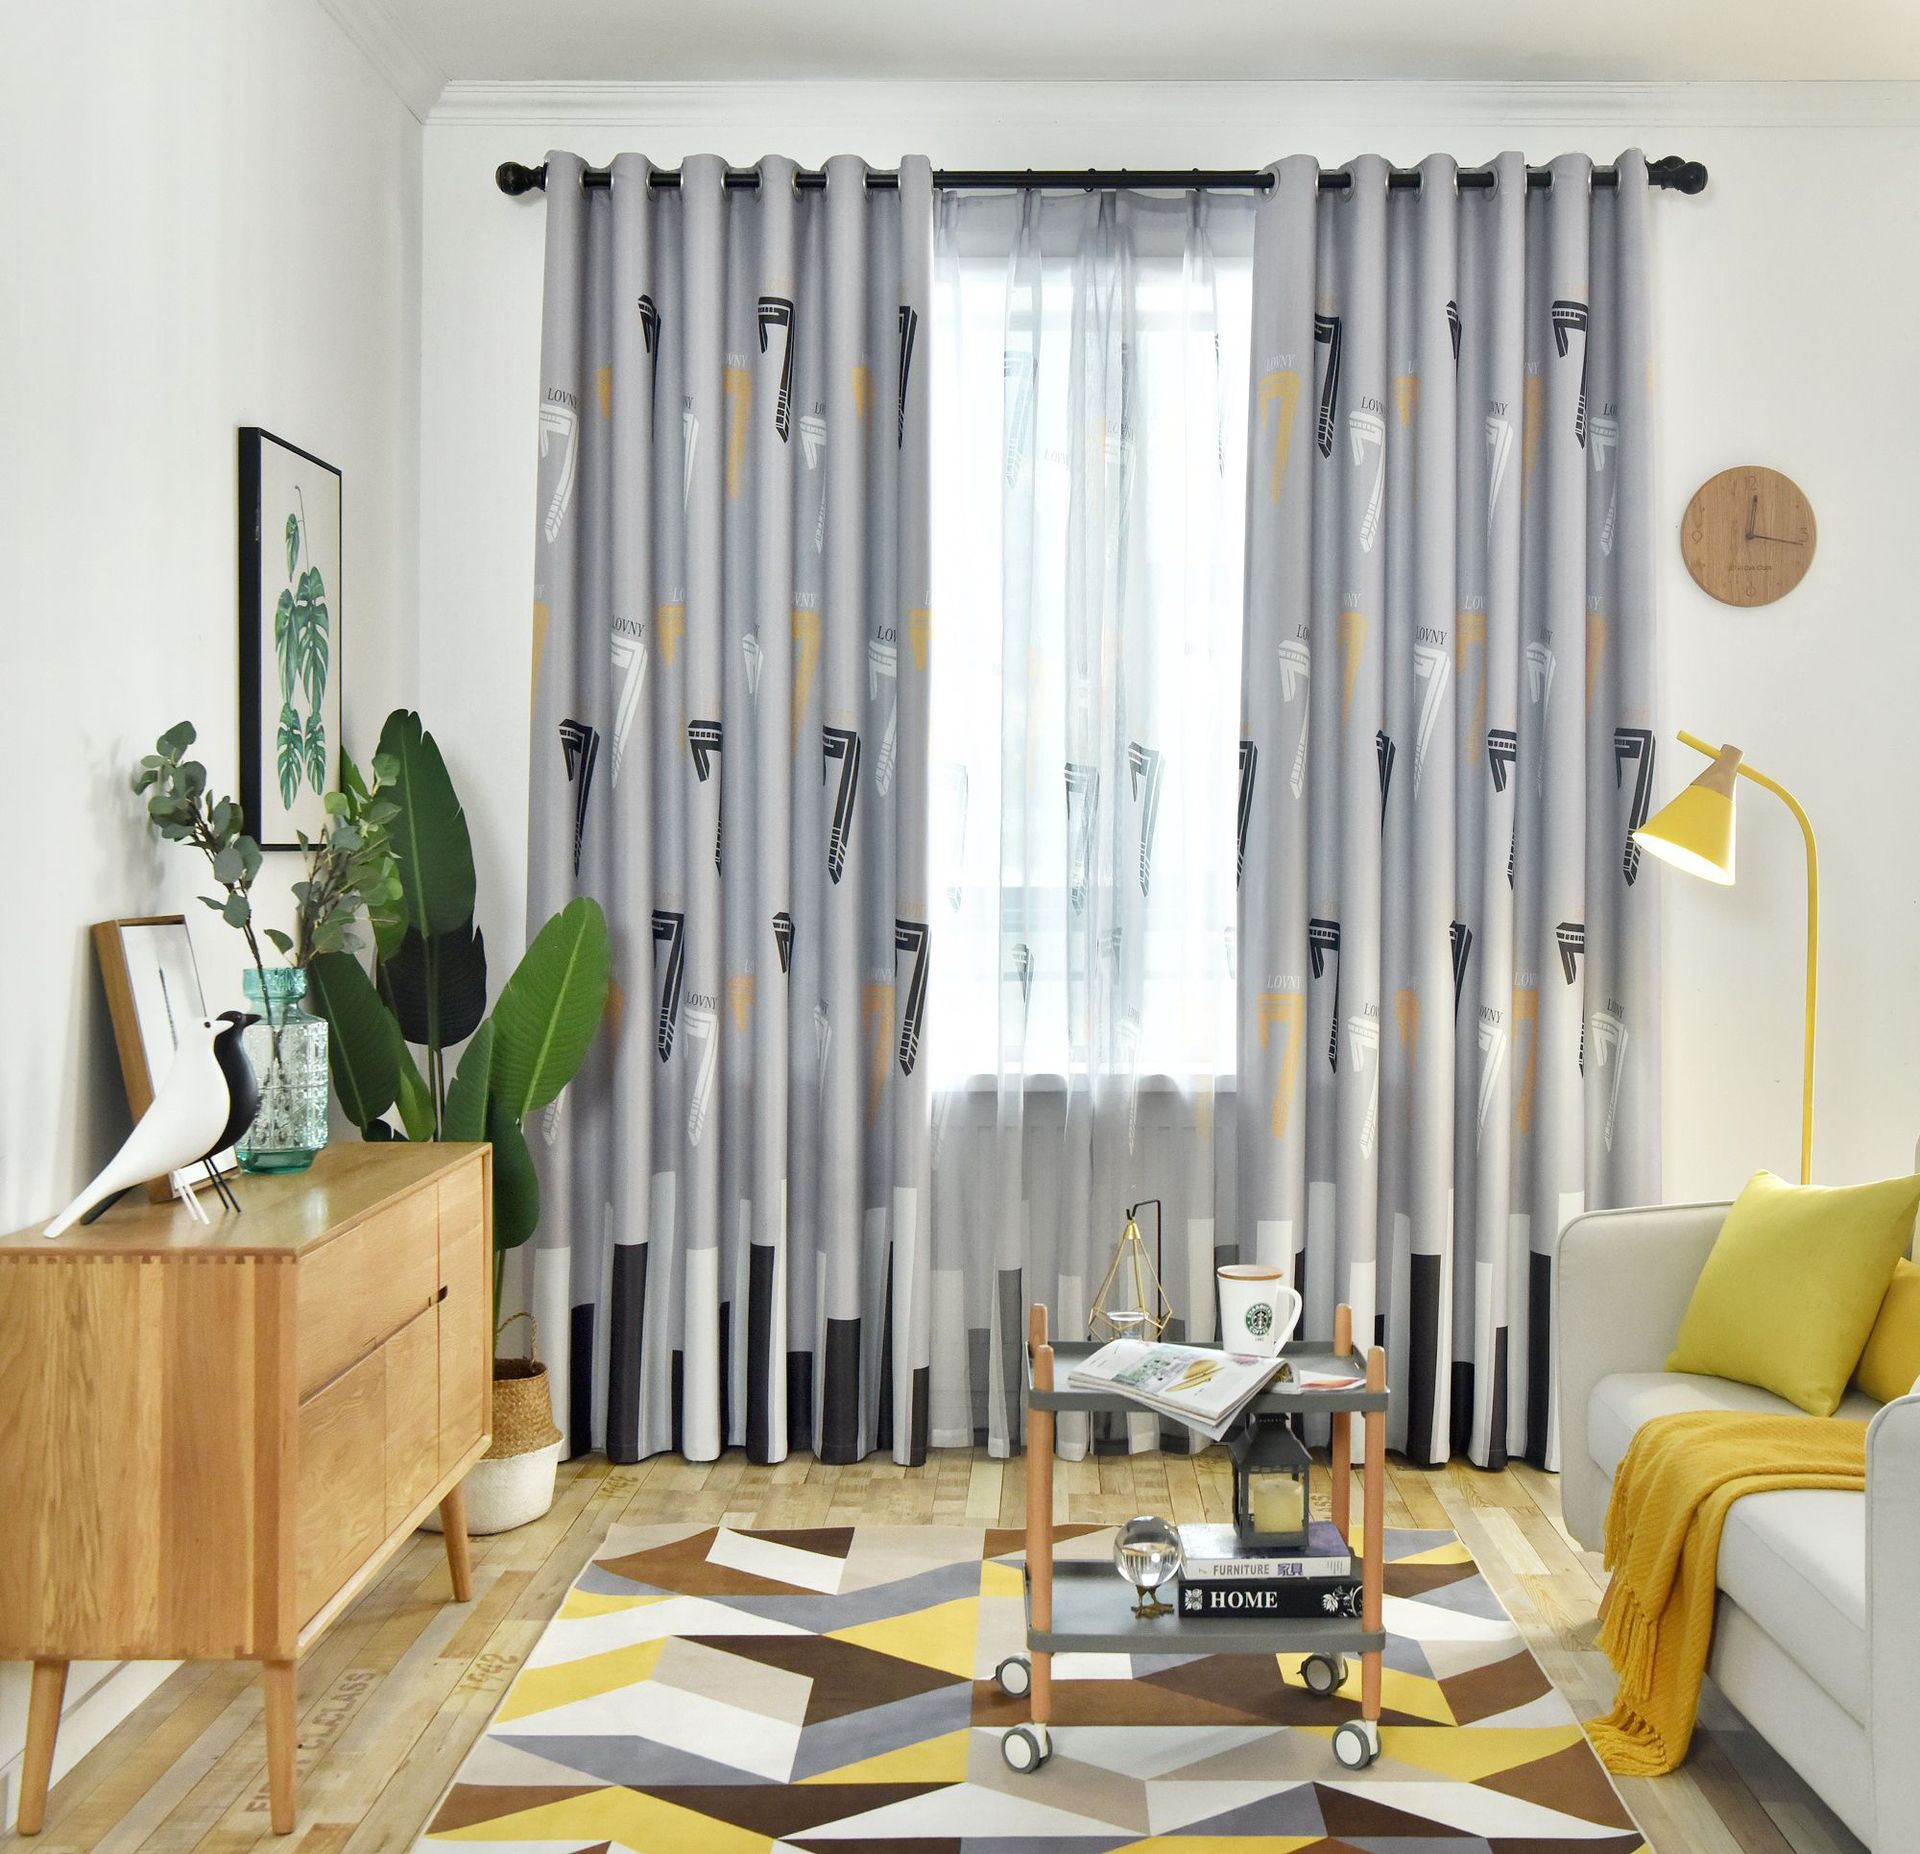 2020 Nordic Shading Finished Curtains For Bedroom Living Room Childrens Window Treatments Modern Blue Gray Curtain Tulle For Kitchen From Sophine08 20 39 Dhgate Com